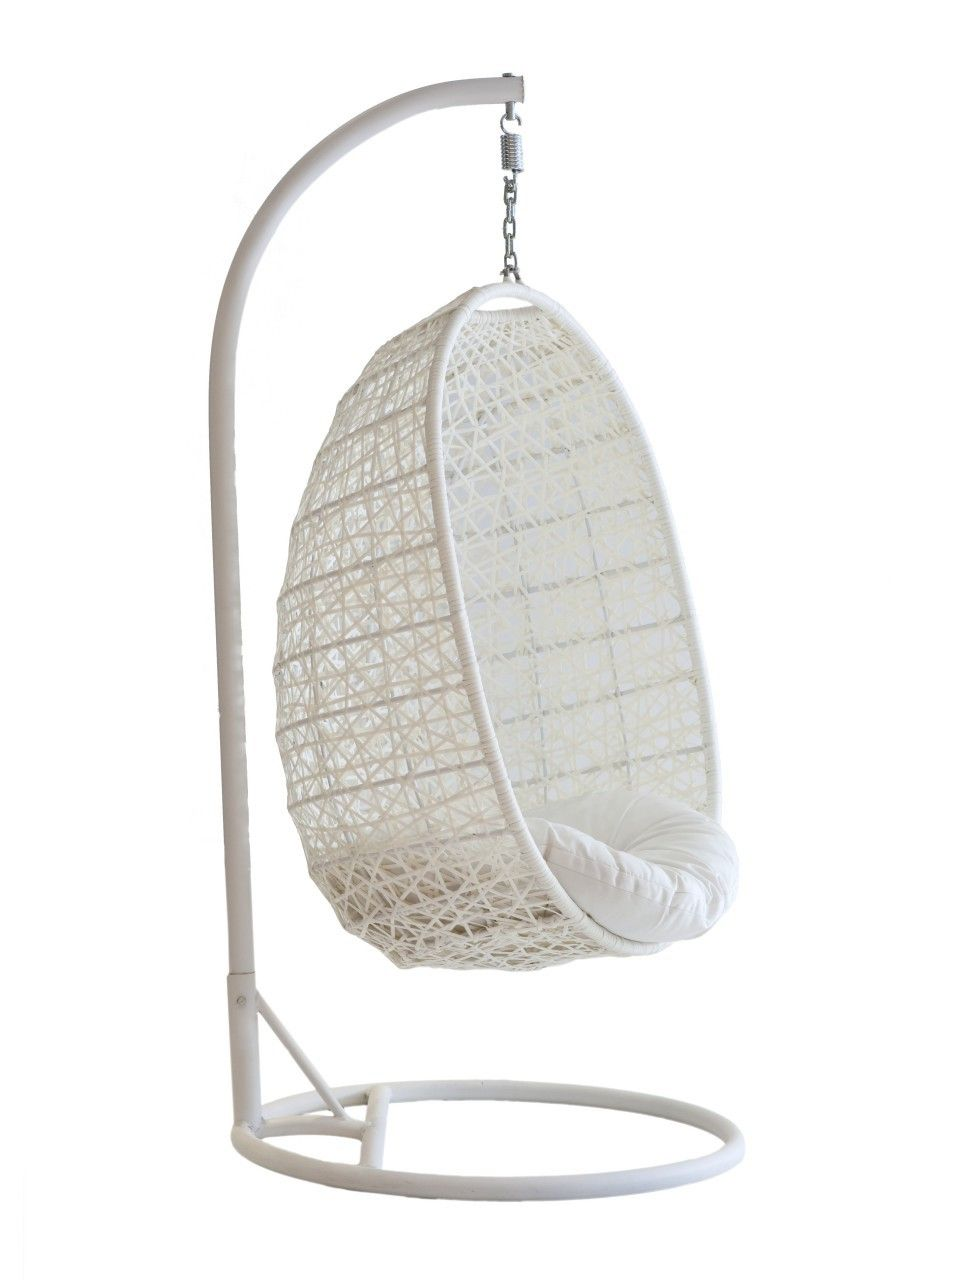 Retro Hanging Chair Furniturecharming White Viva Design Cora Hanging Chair Design